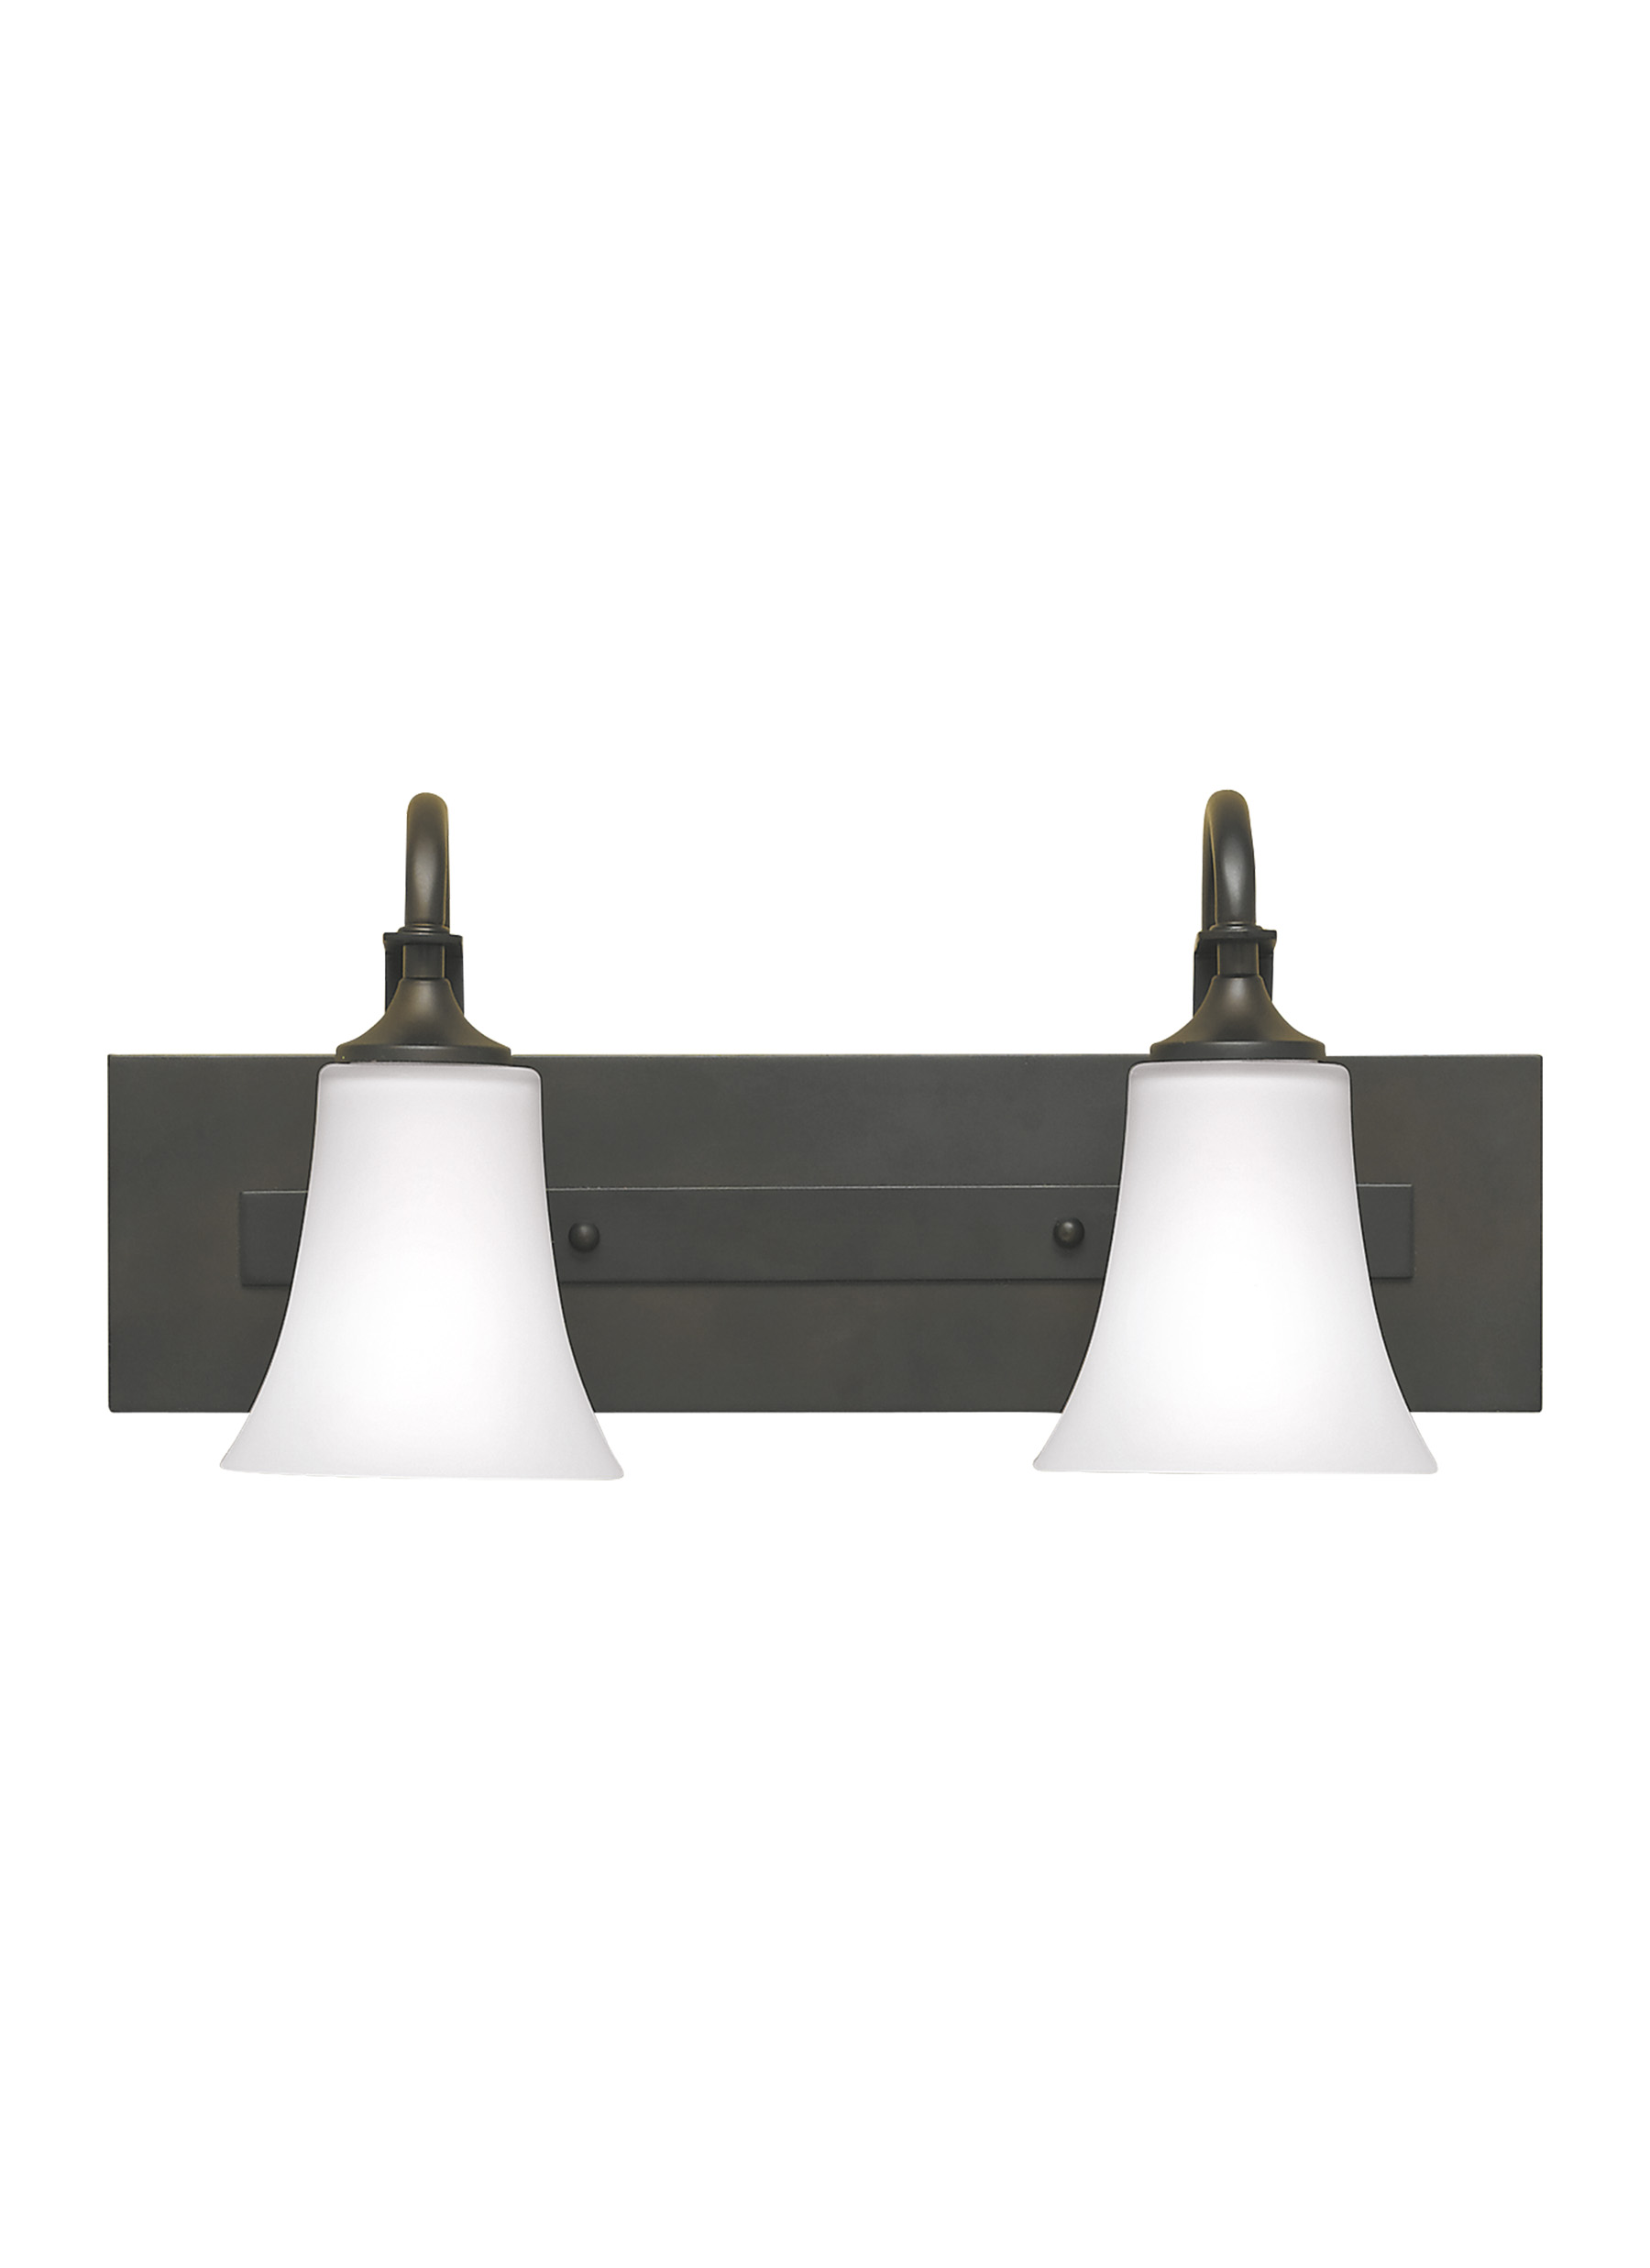 VS12702-ORB,2 - Light Vanity Fixture,Oil Rubbed Bronze